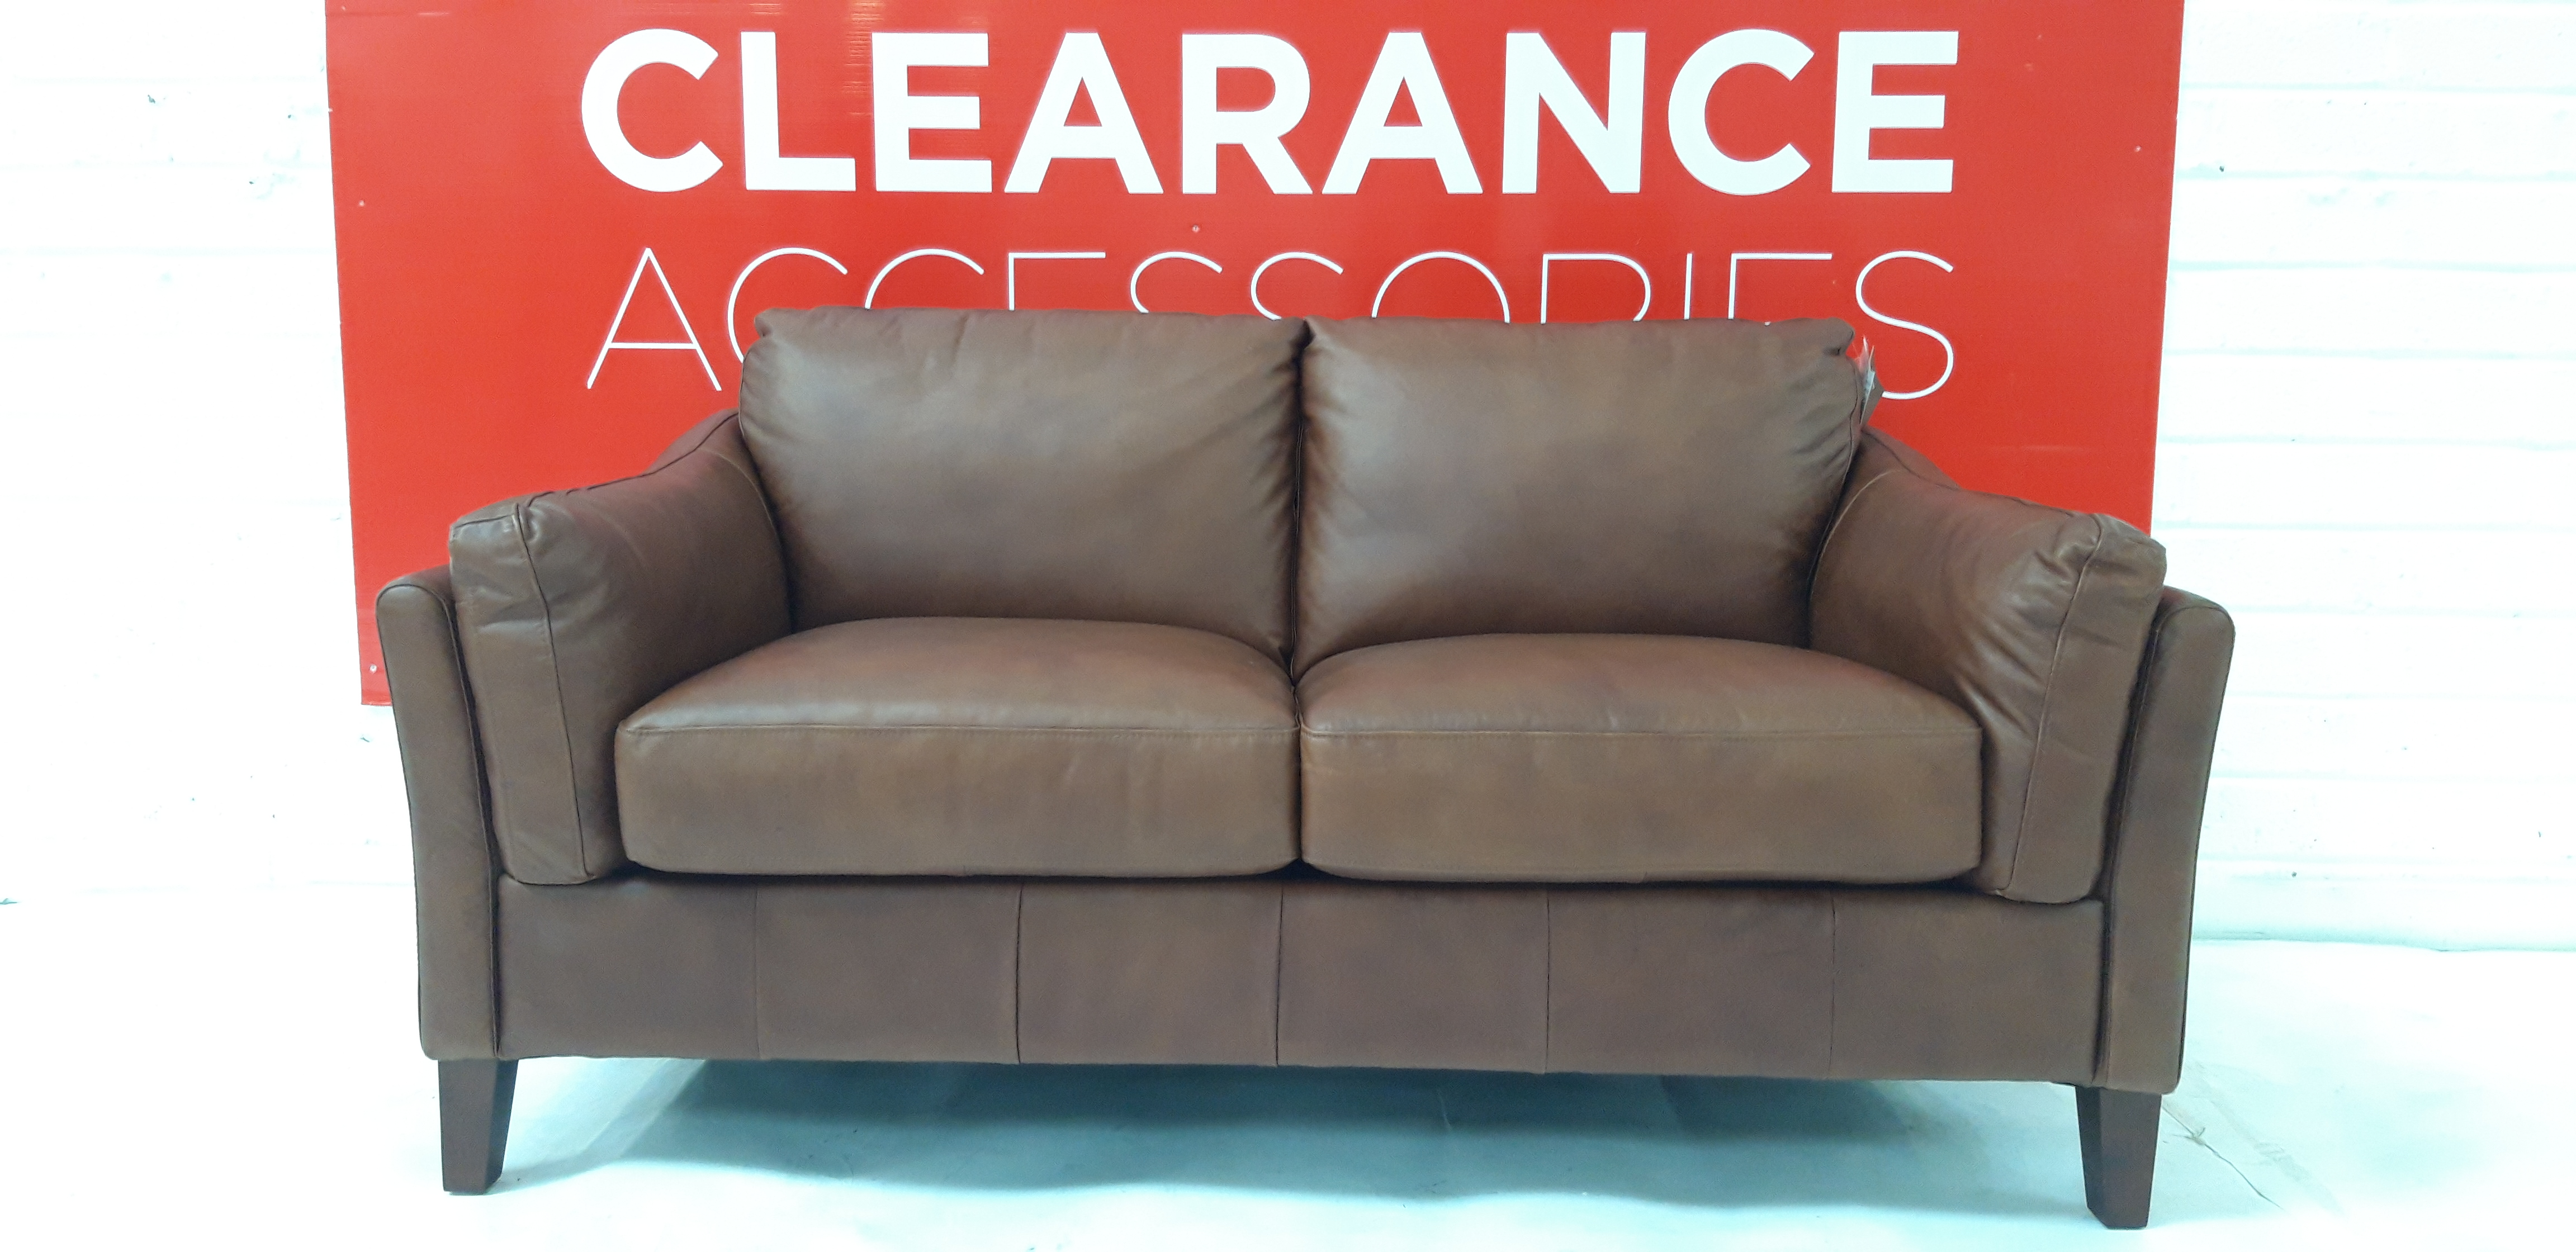 Randall 2 Seater Sofa - OUTLET